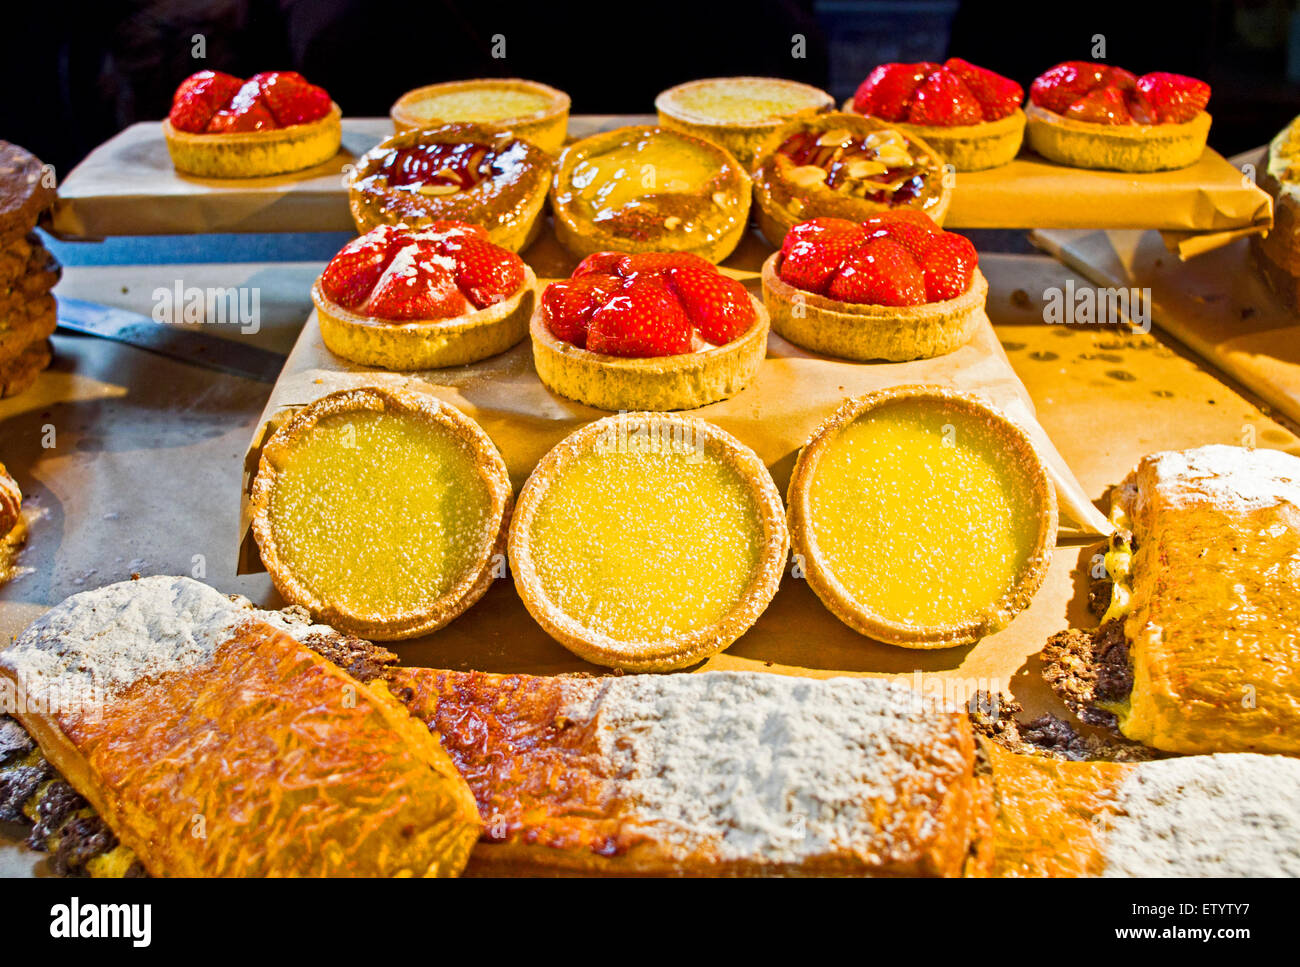 A mouth-watering display of tartlets and other pastries on a food stall at an artisan market in the Tron church, - Stock Image